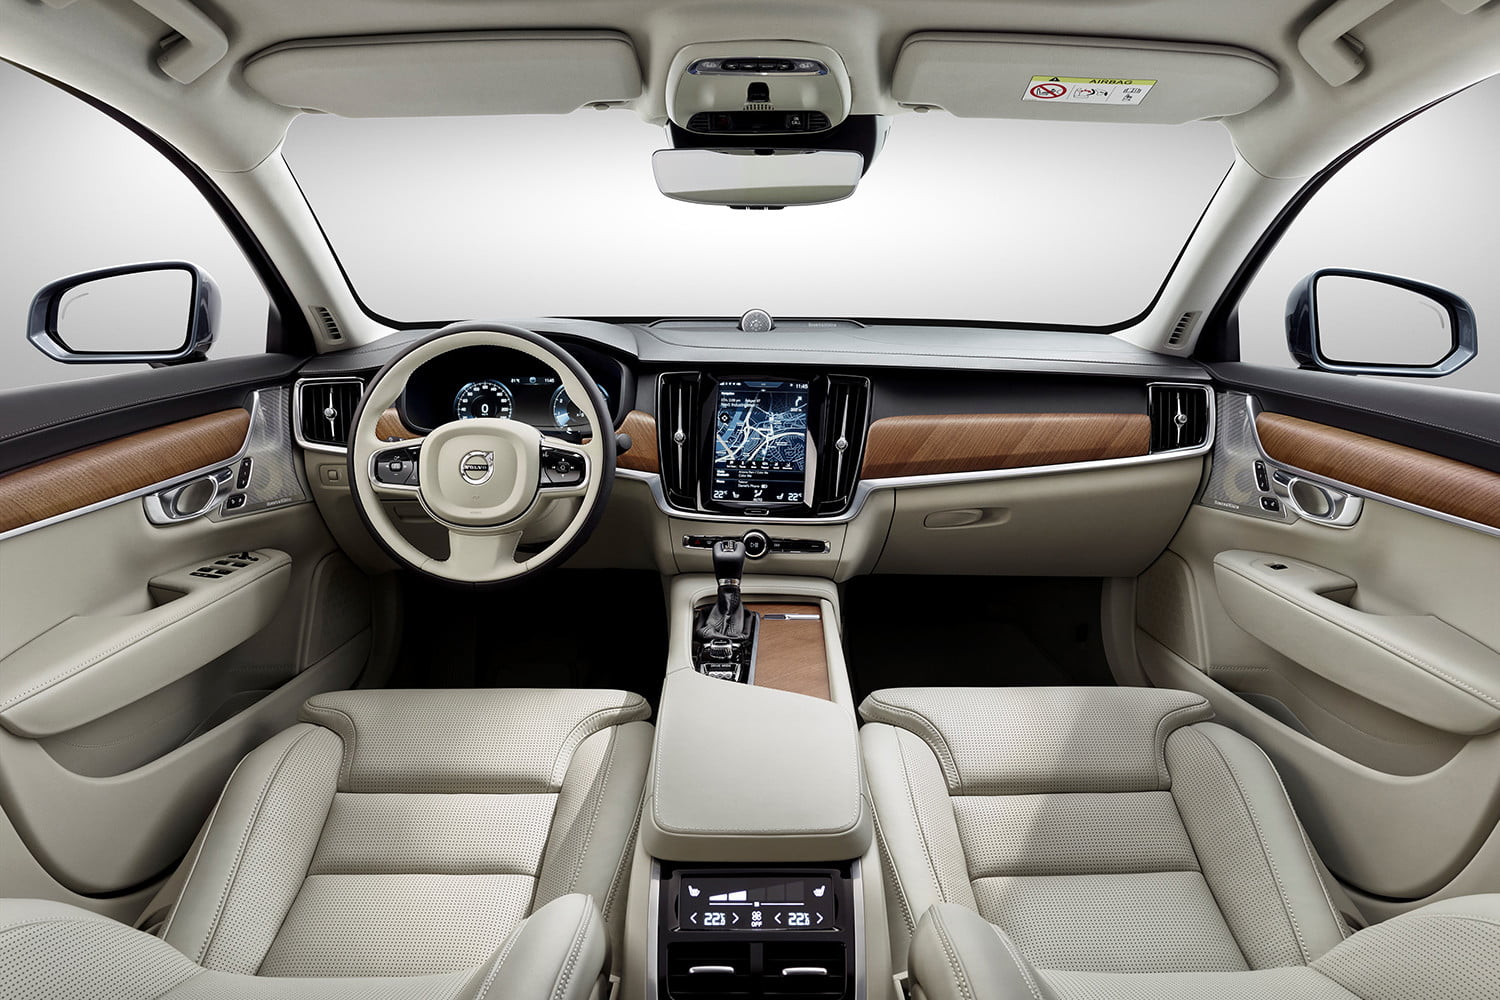 dt cars top stories of 2015 170101 interior blond volvo s90